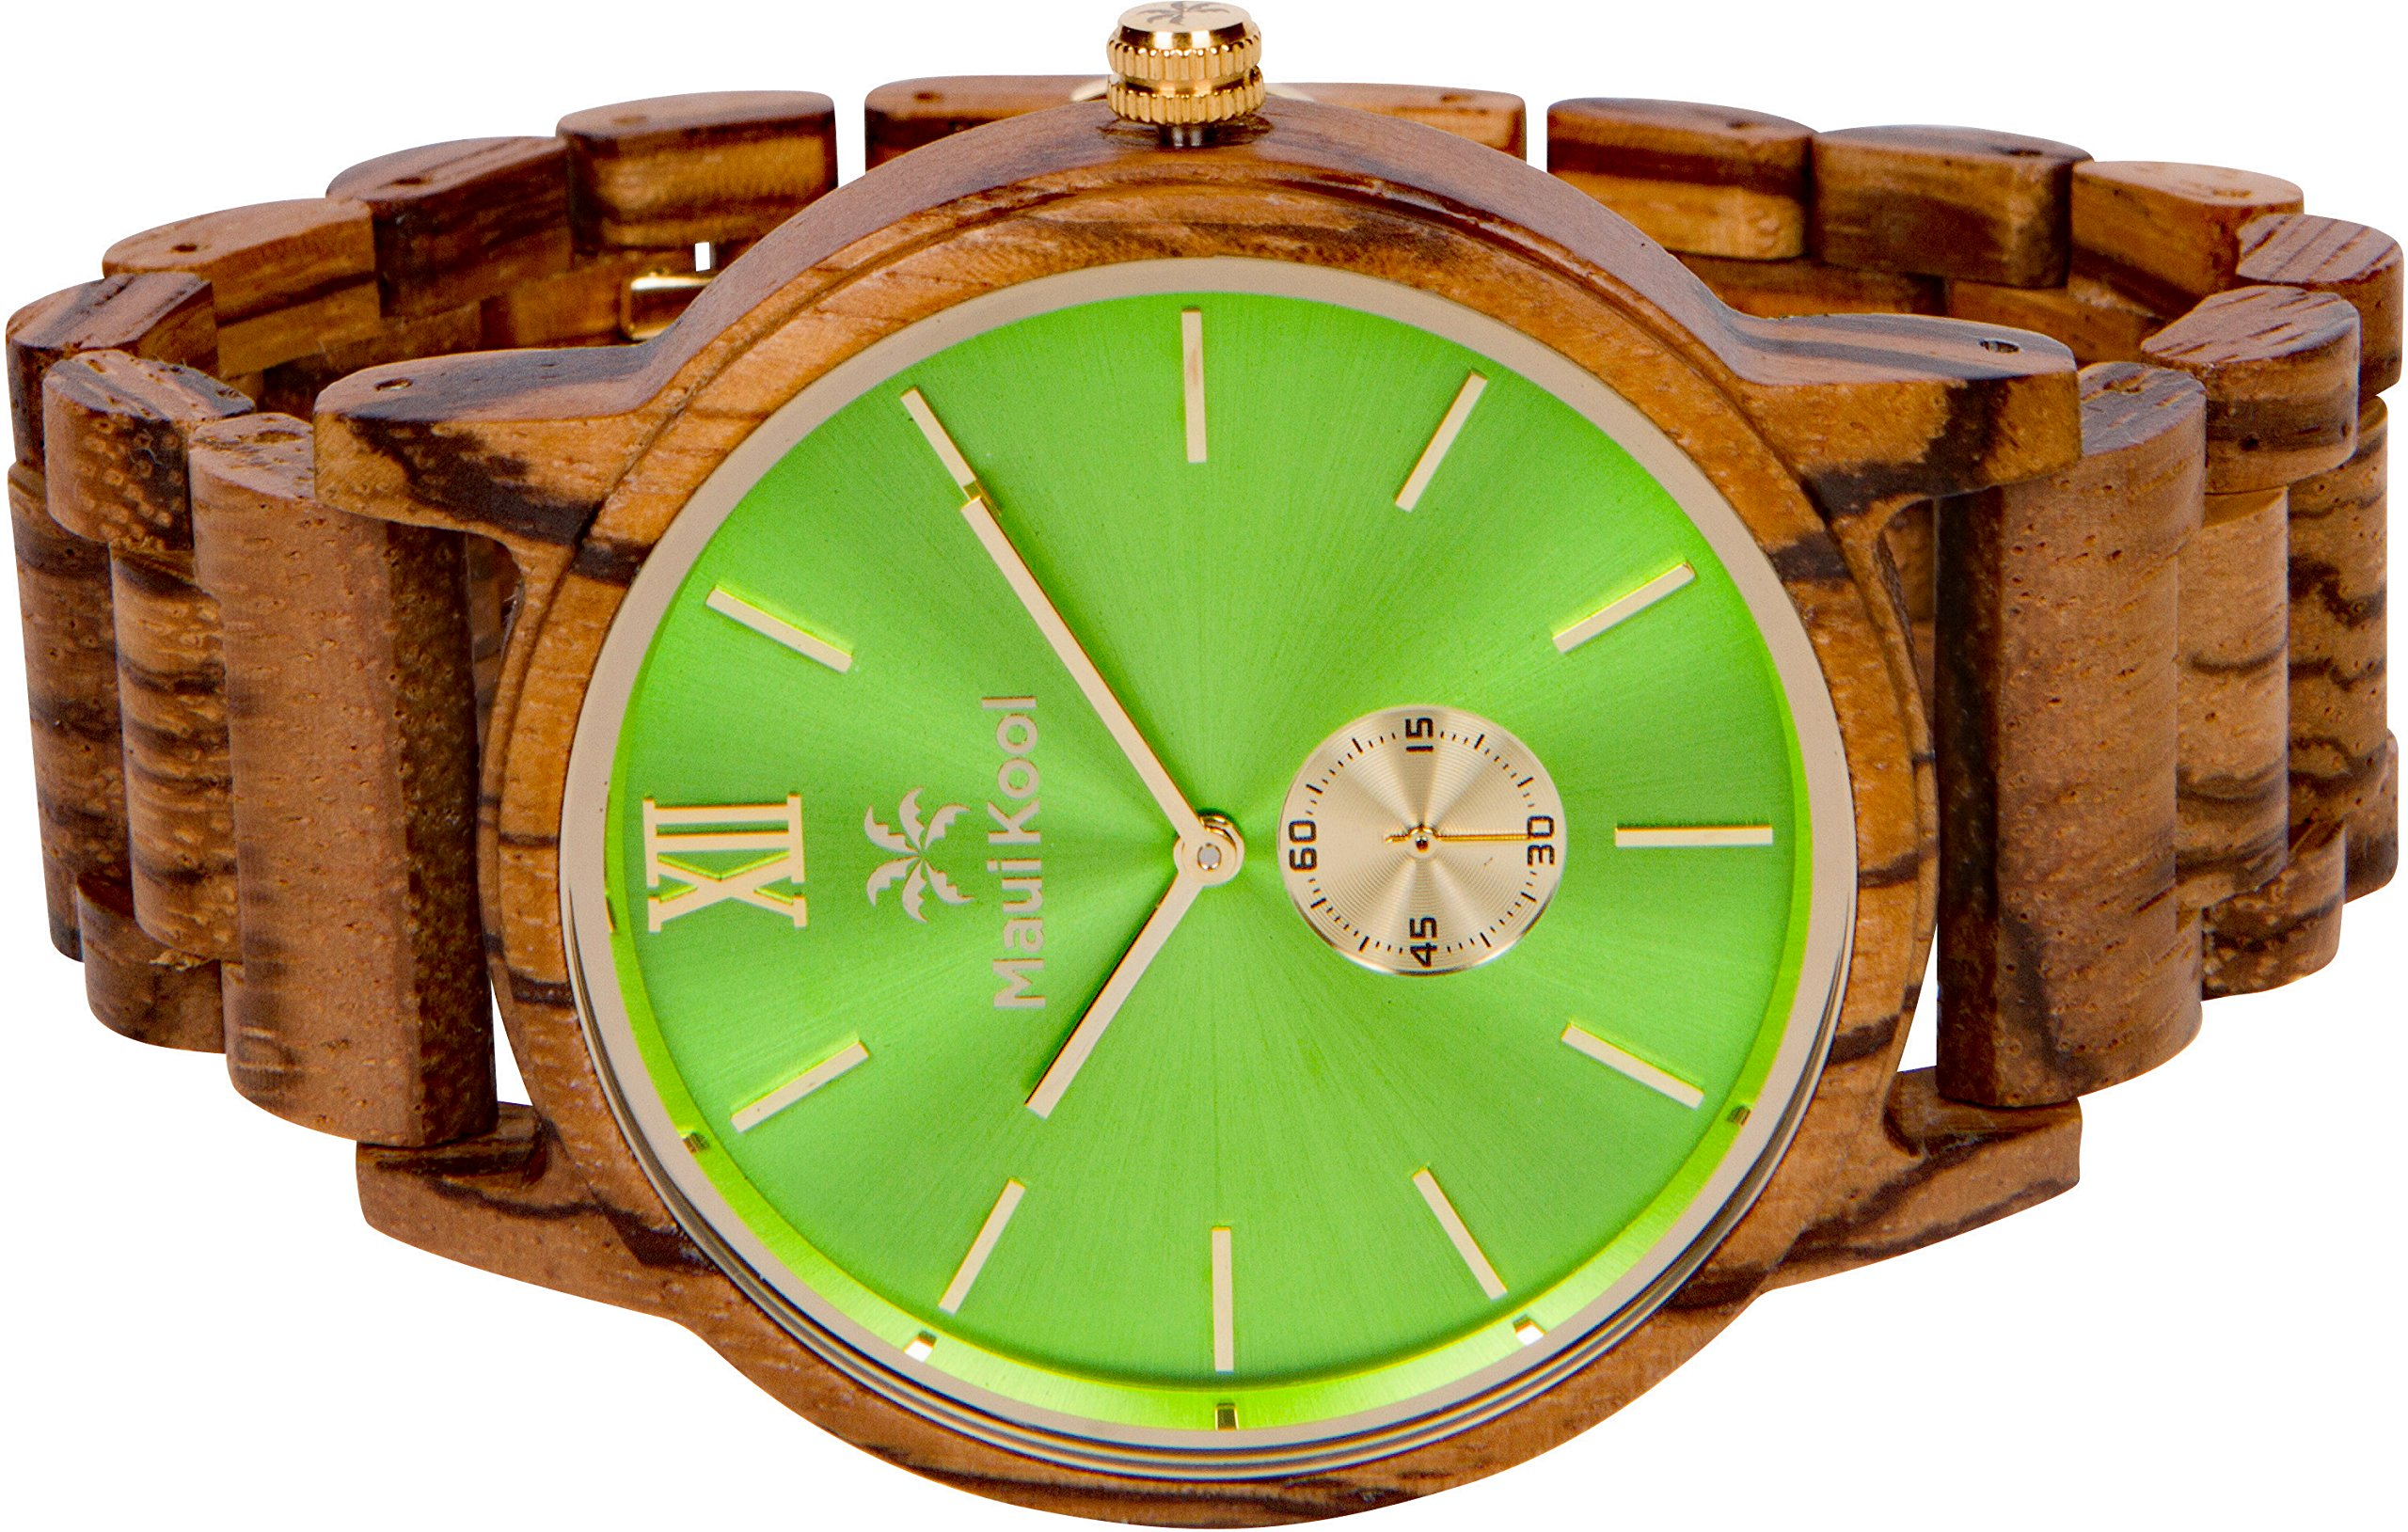 Wooden Watch For Men Maui Kool Kaanapali Collection Analog Large Face Wood Watch Bamboo Gift Box (C6 - Green Face) by Maui Kool (Image #3)